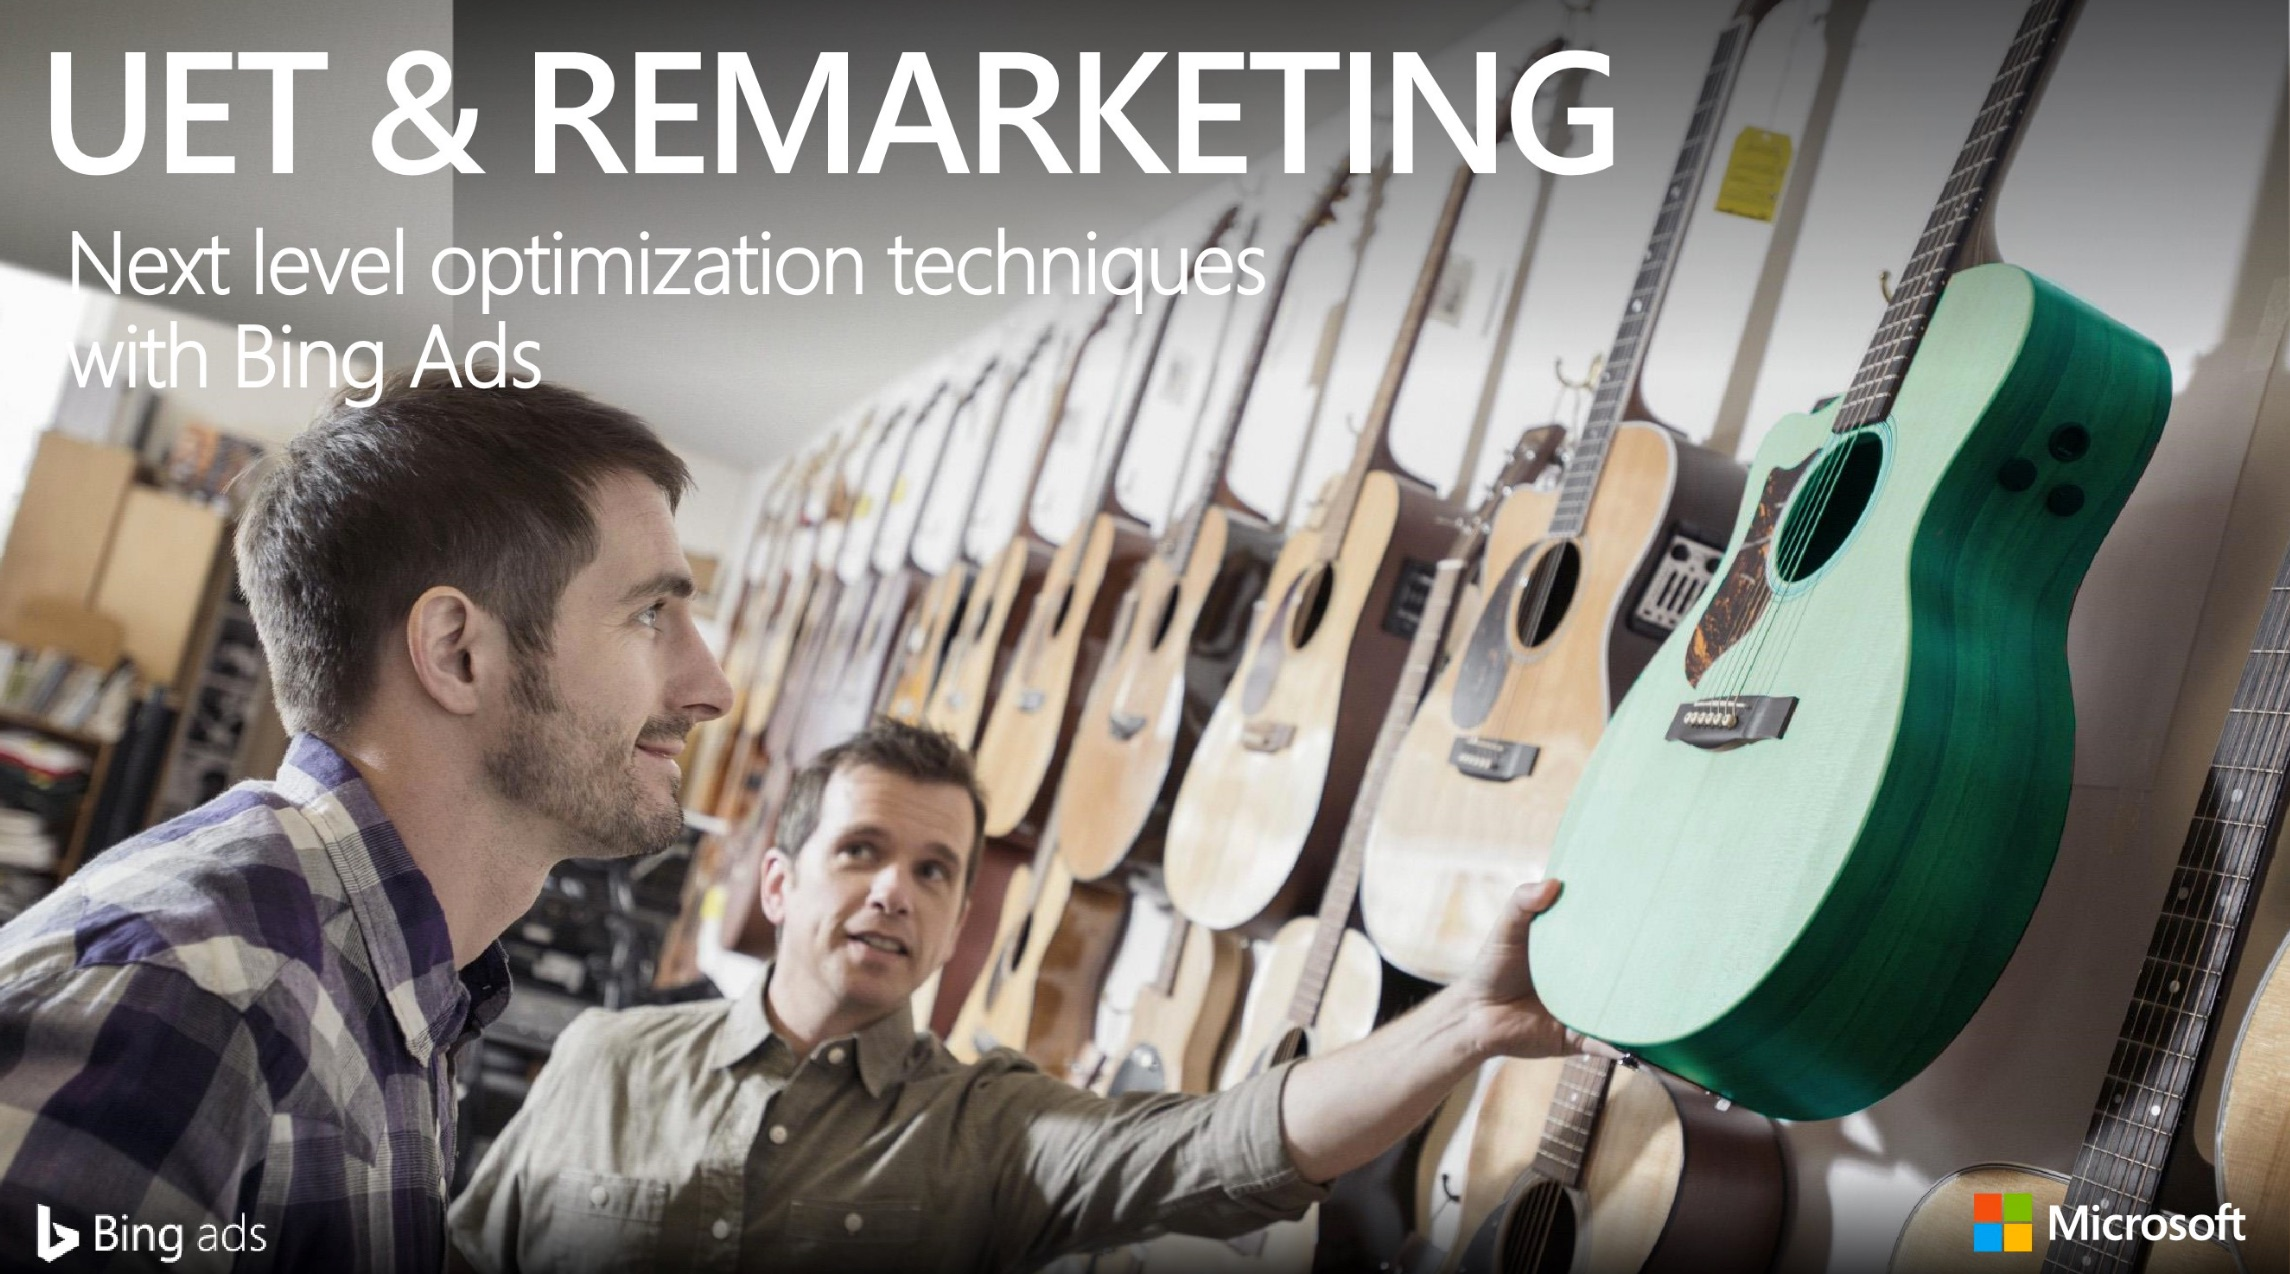 bing-retail-dag-uet-tag-remarketing